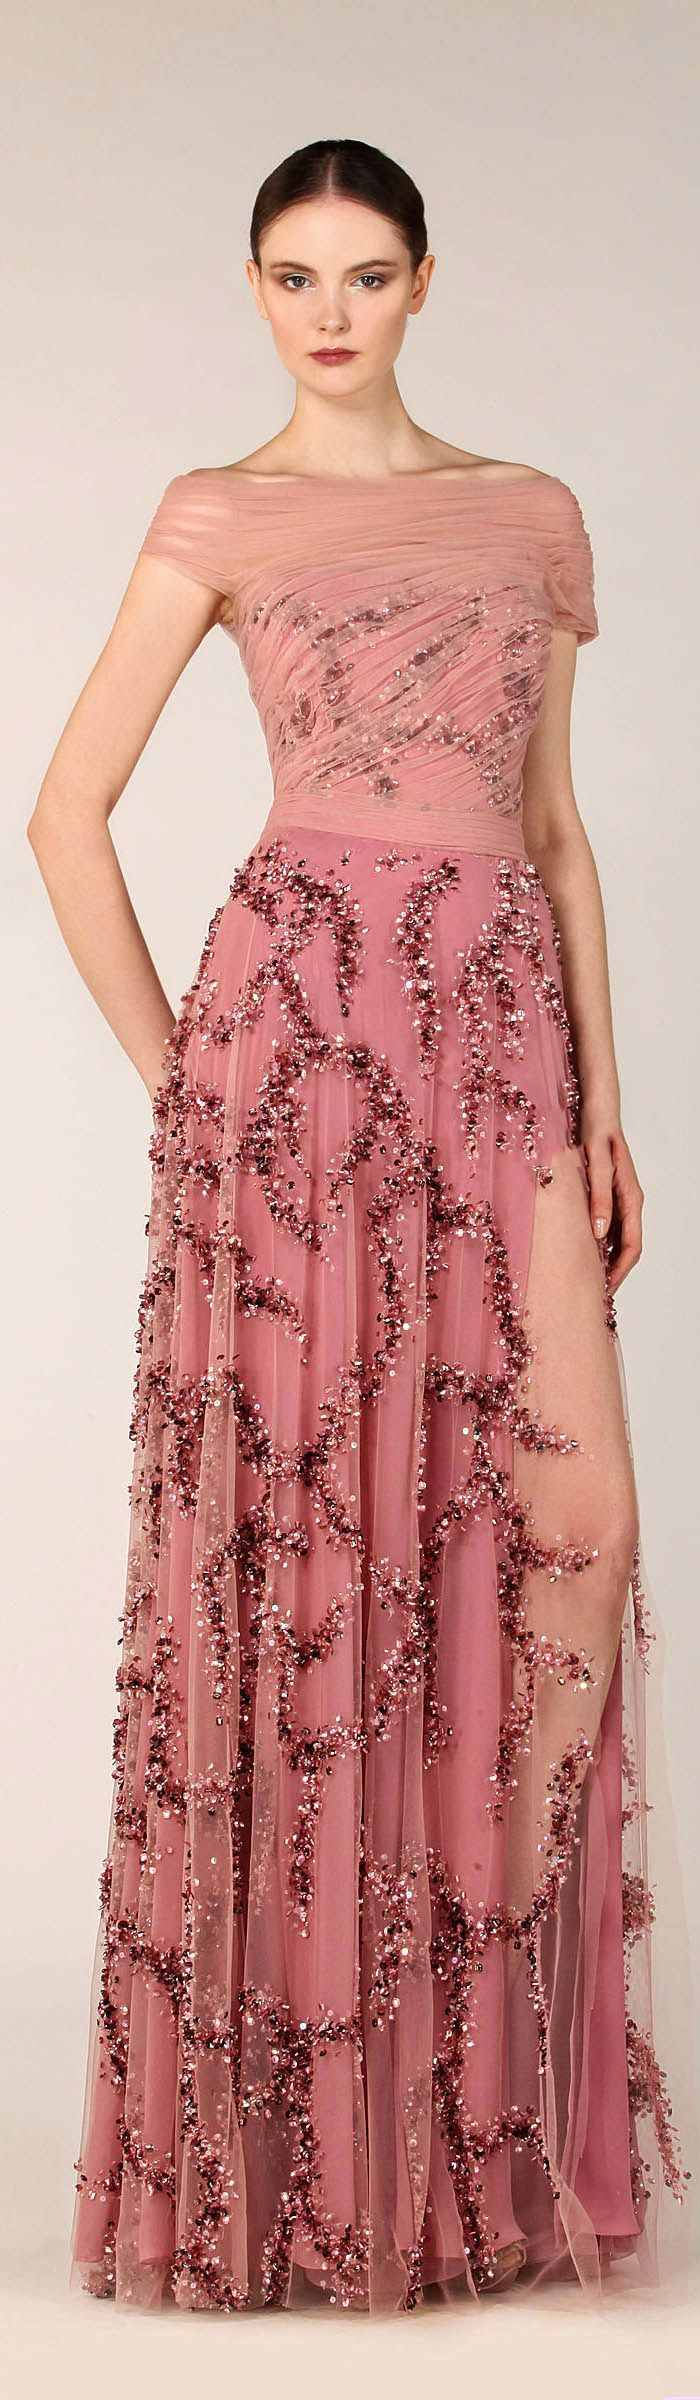 72 best Pink evening gowns images on Pinterest | Formal evening ...